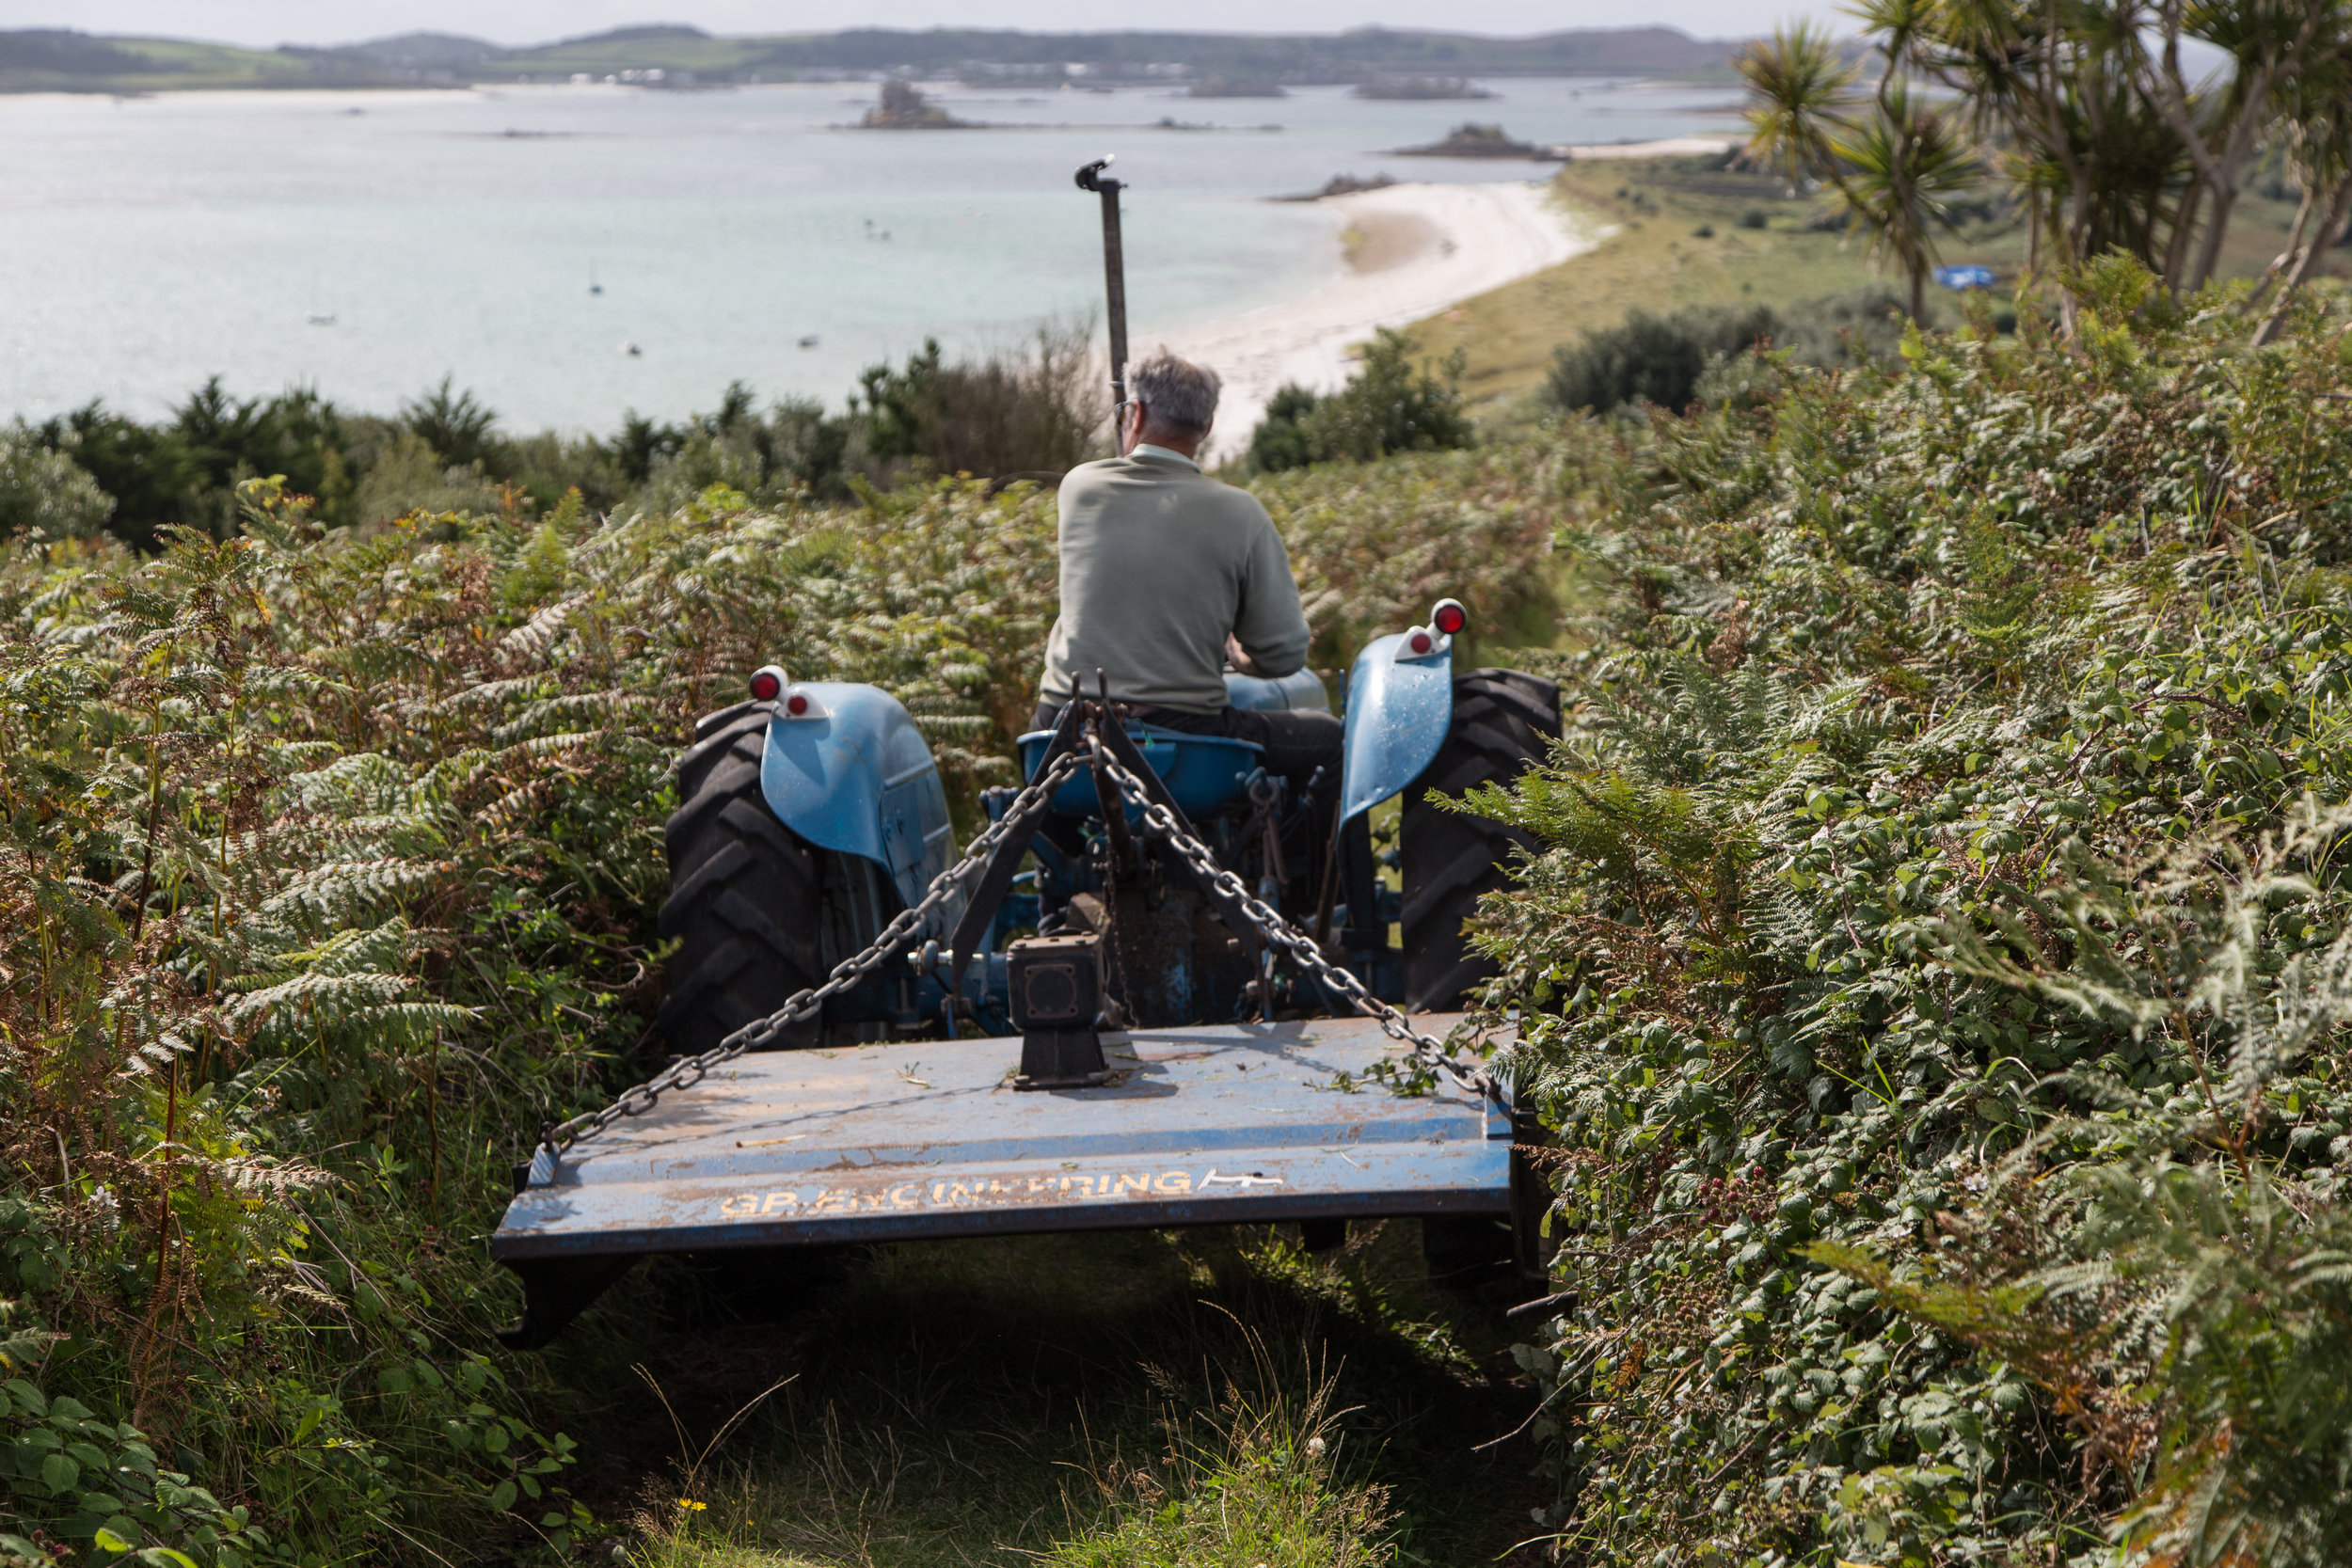 """Mark Smith, an IT Manager for IBM who lives in Leicestershire, took the photo entitled """"The Daily Commute"""" on his family holiday to the islands this summer."""